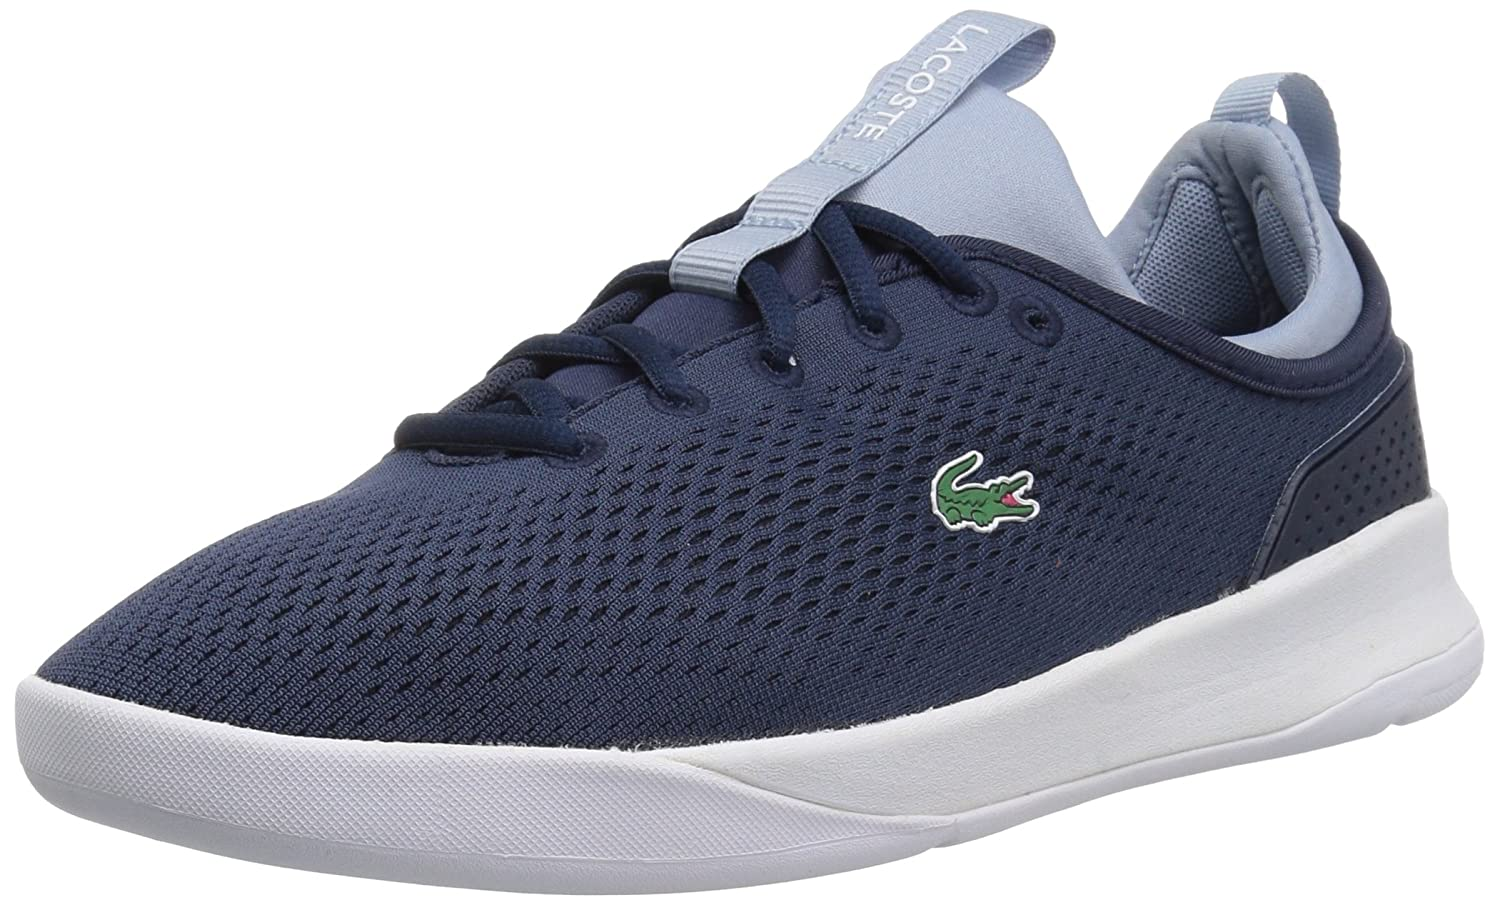 Lacoste Women's LT Spirit 2.0 118 1 SPW Sneaker B071GQ3J4R 6 B(M) US|Nvy/Light Blue